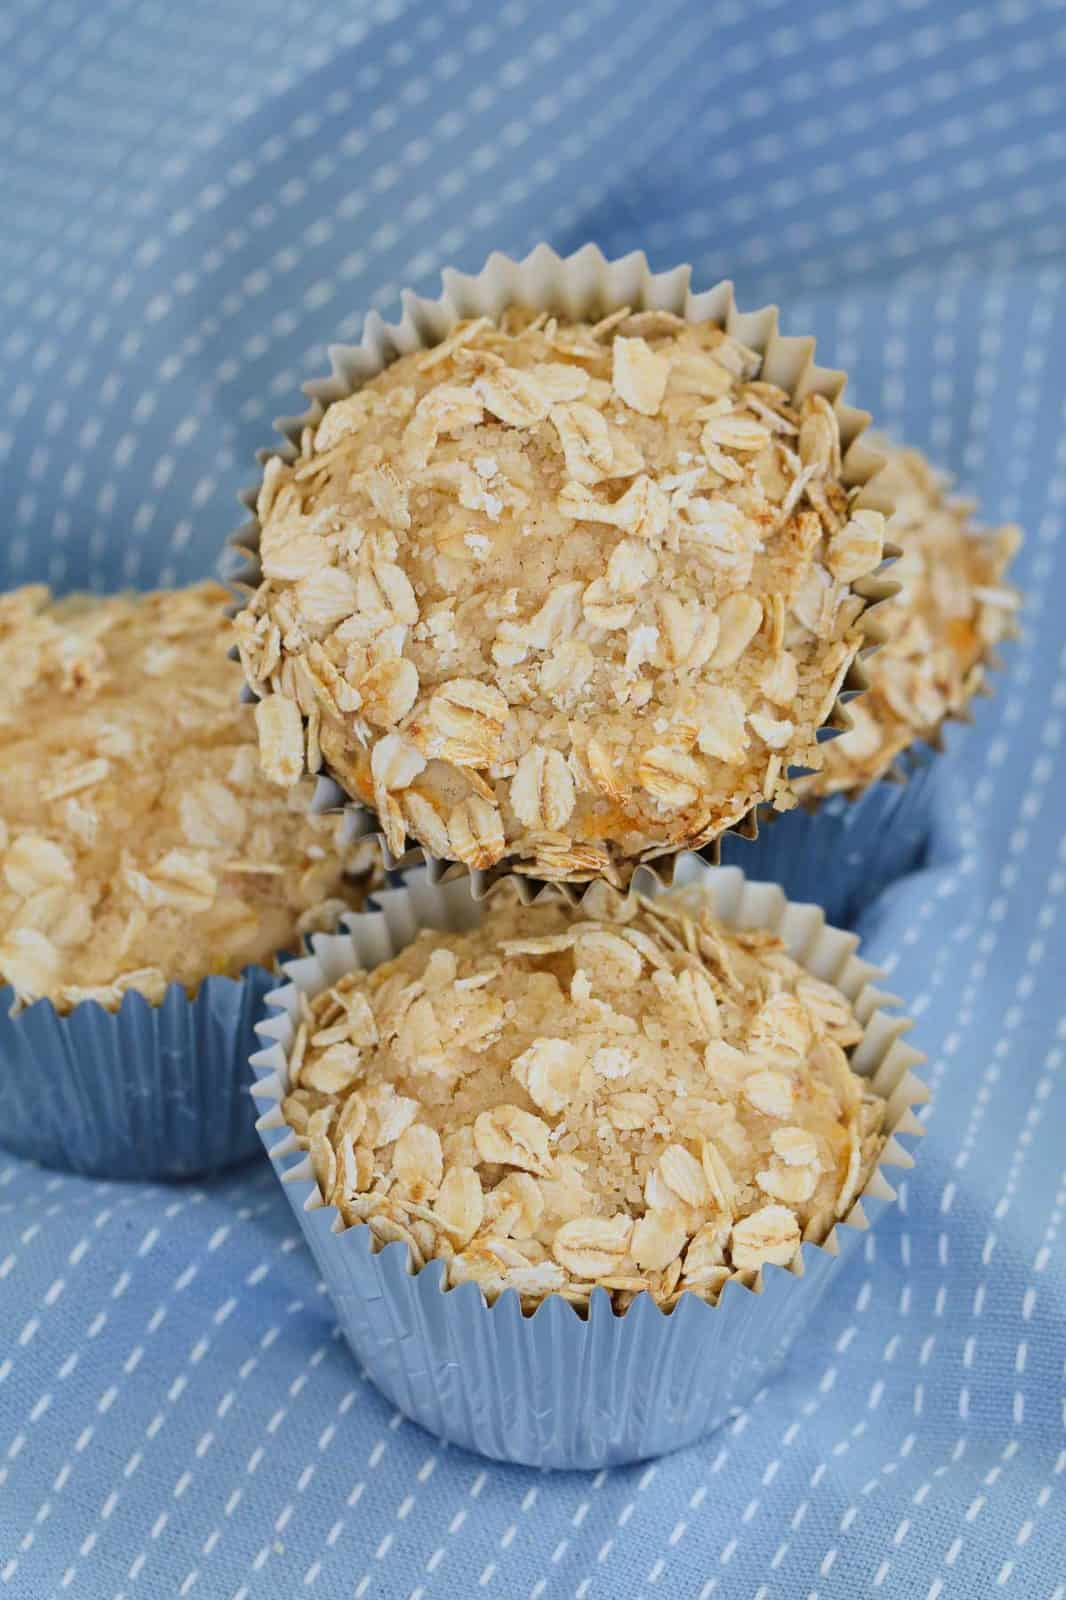 Baked apple oat muffins in blue muffin cases on blue tea towel